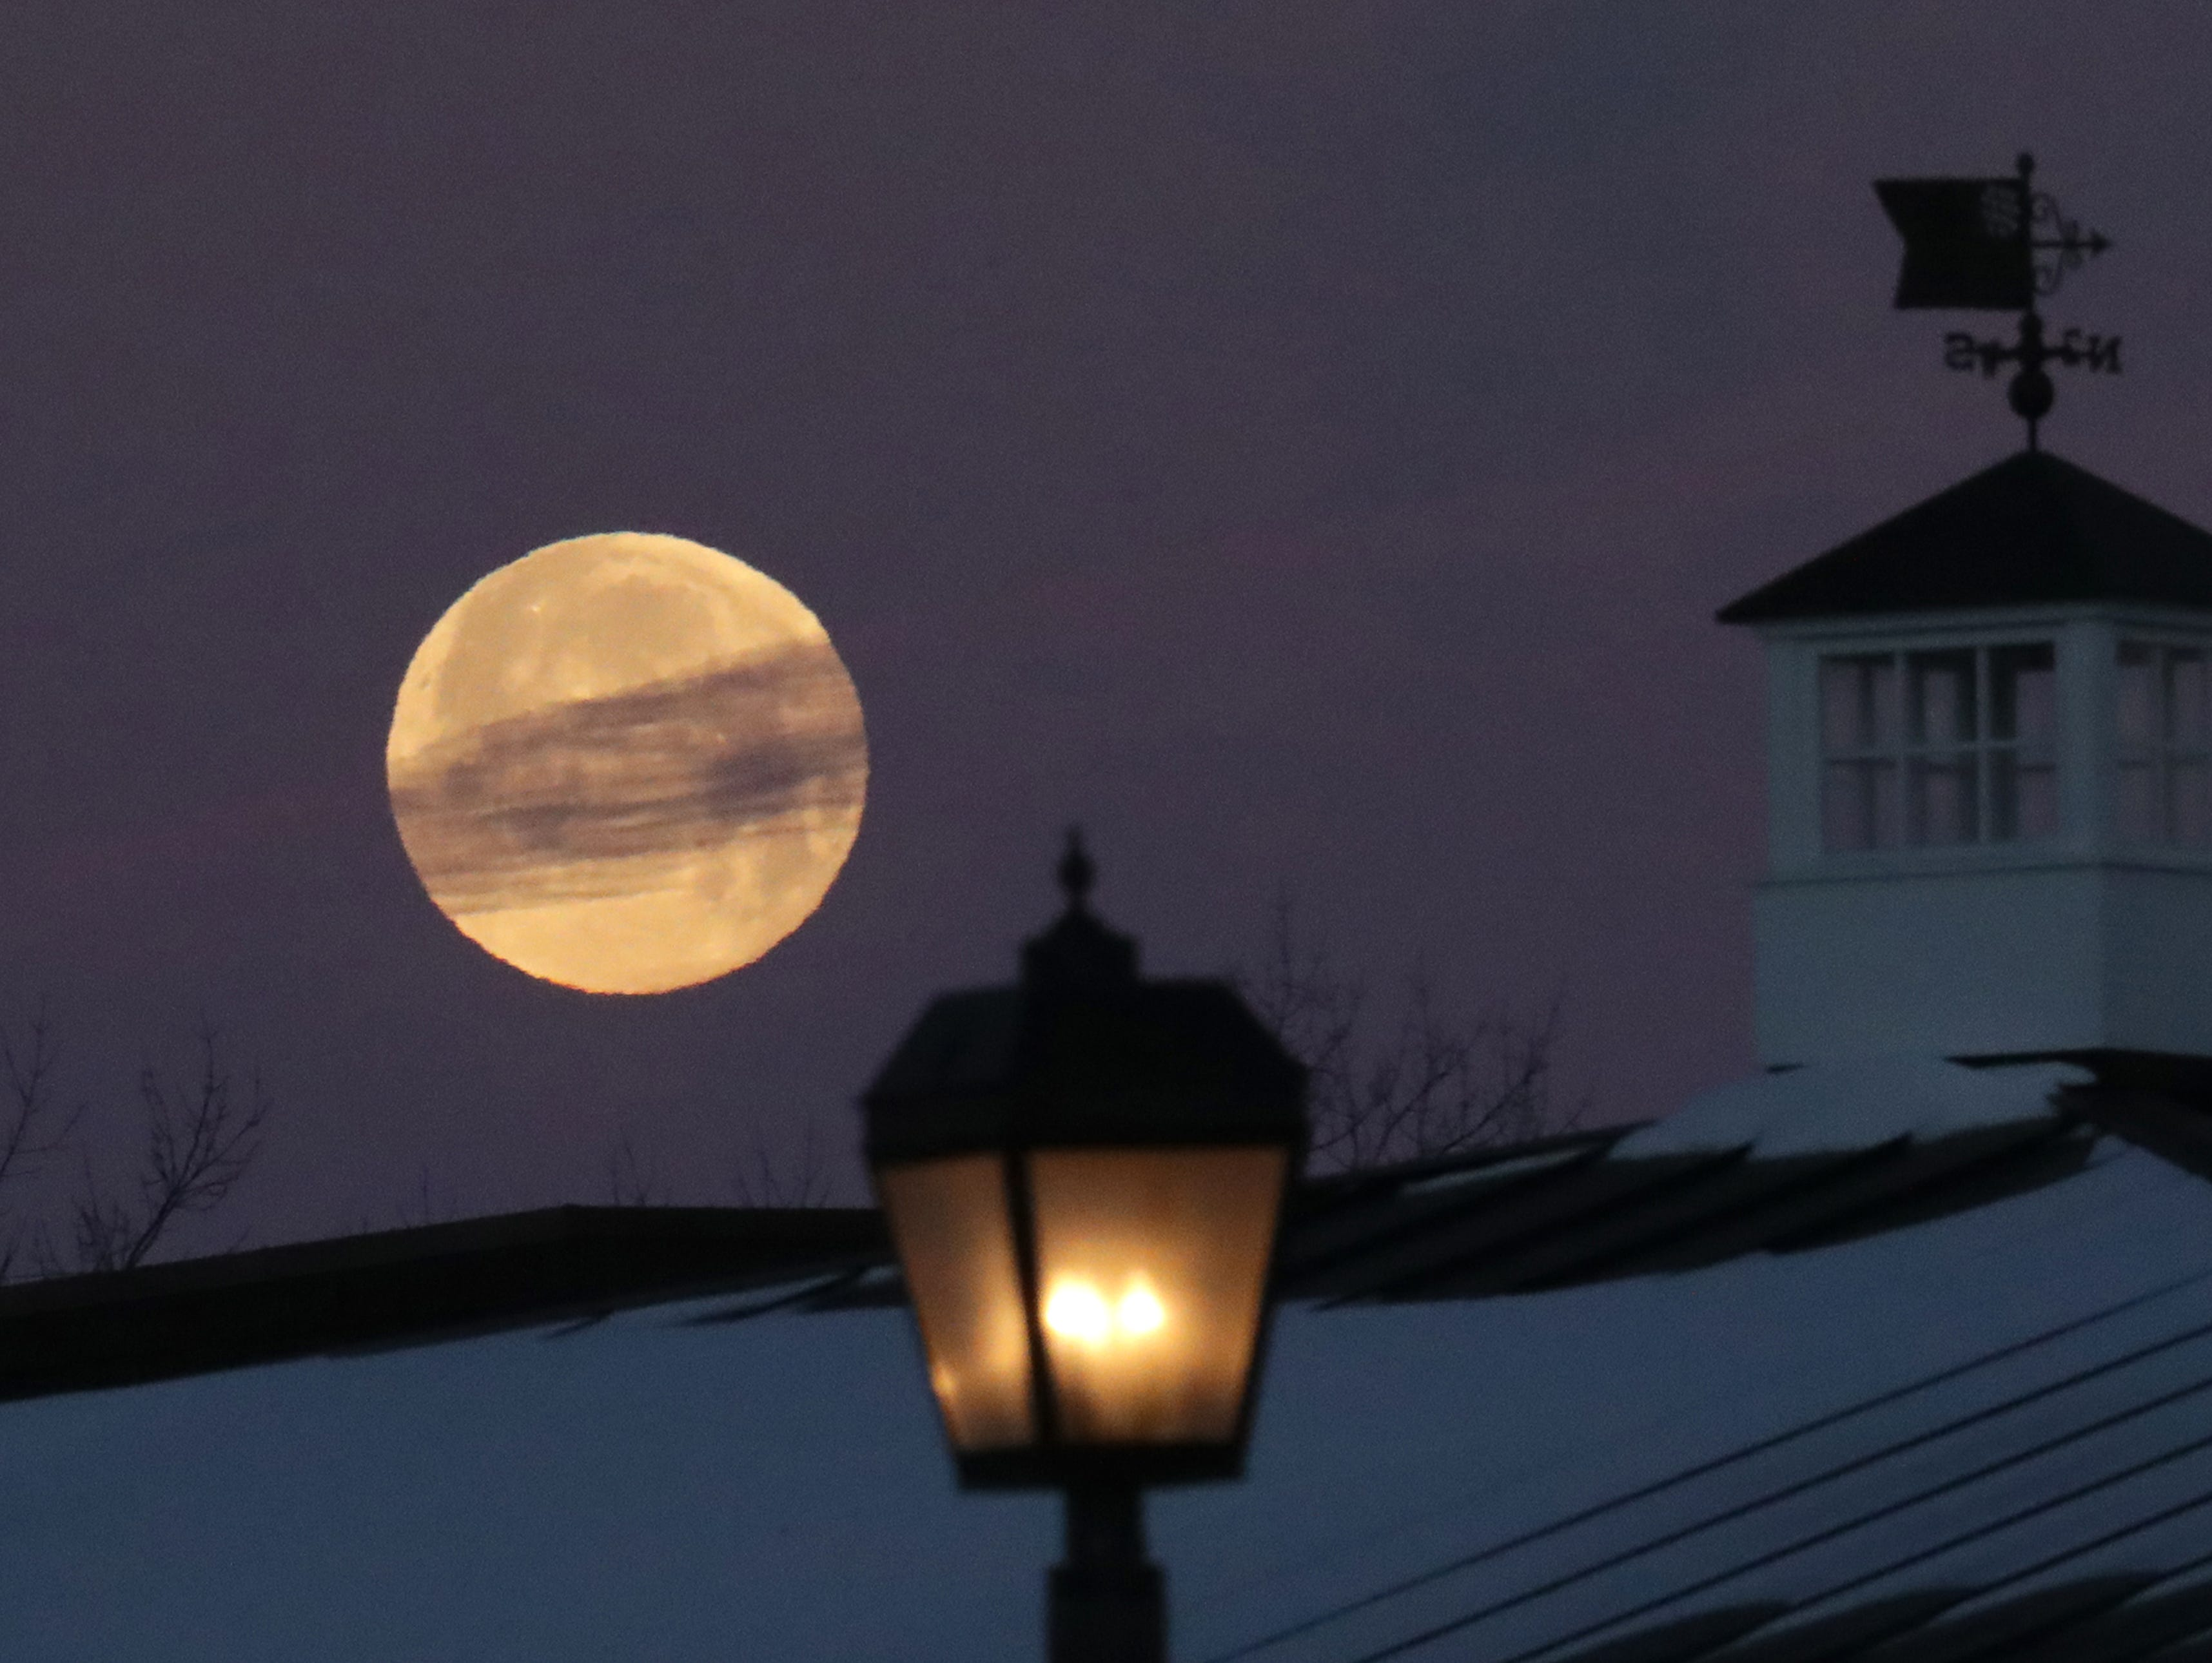 The nearly full moon after last night's lunar eclipse in Bayside.